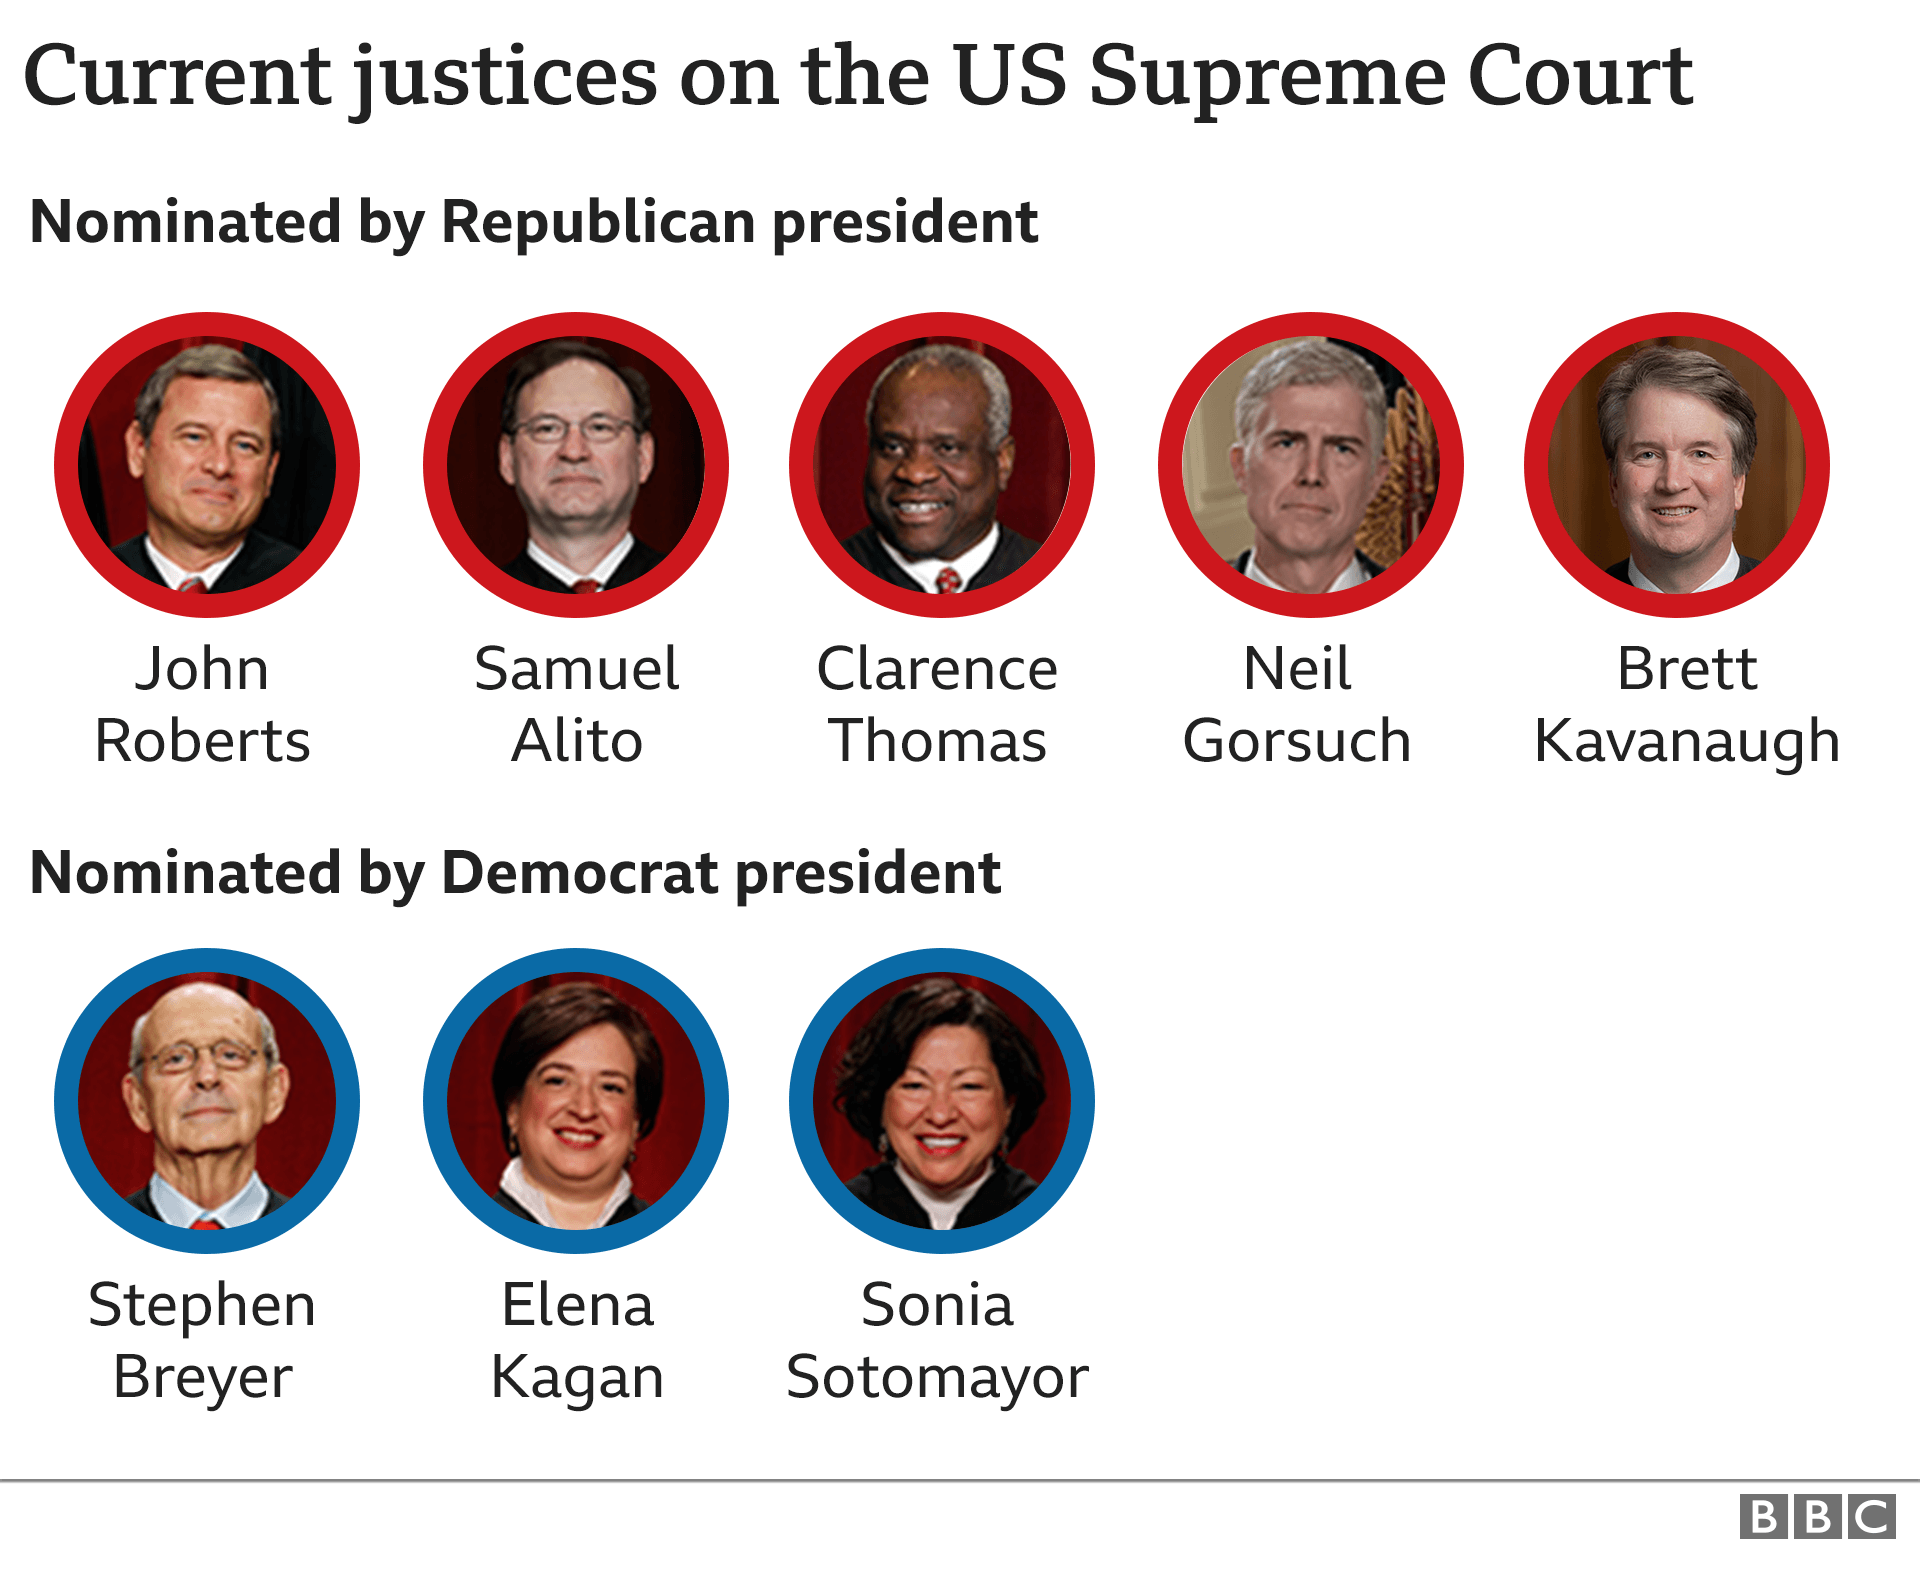 A graph showing the currnet justices